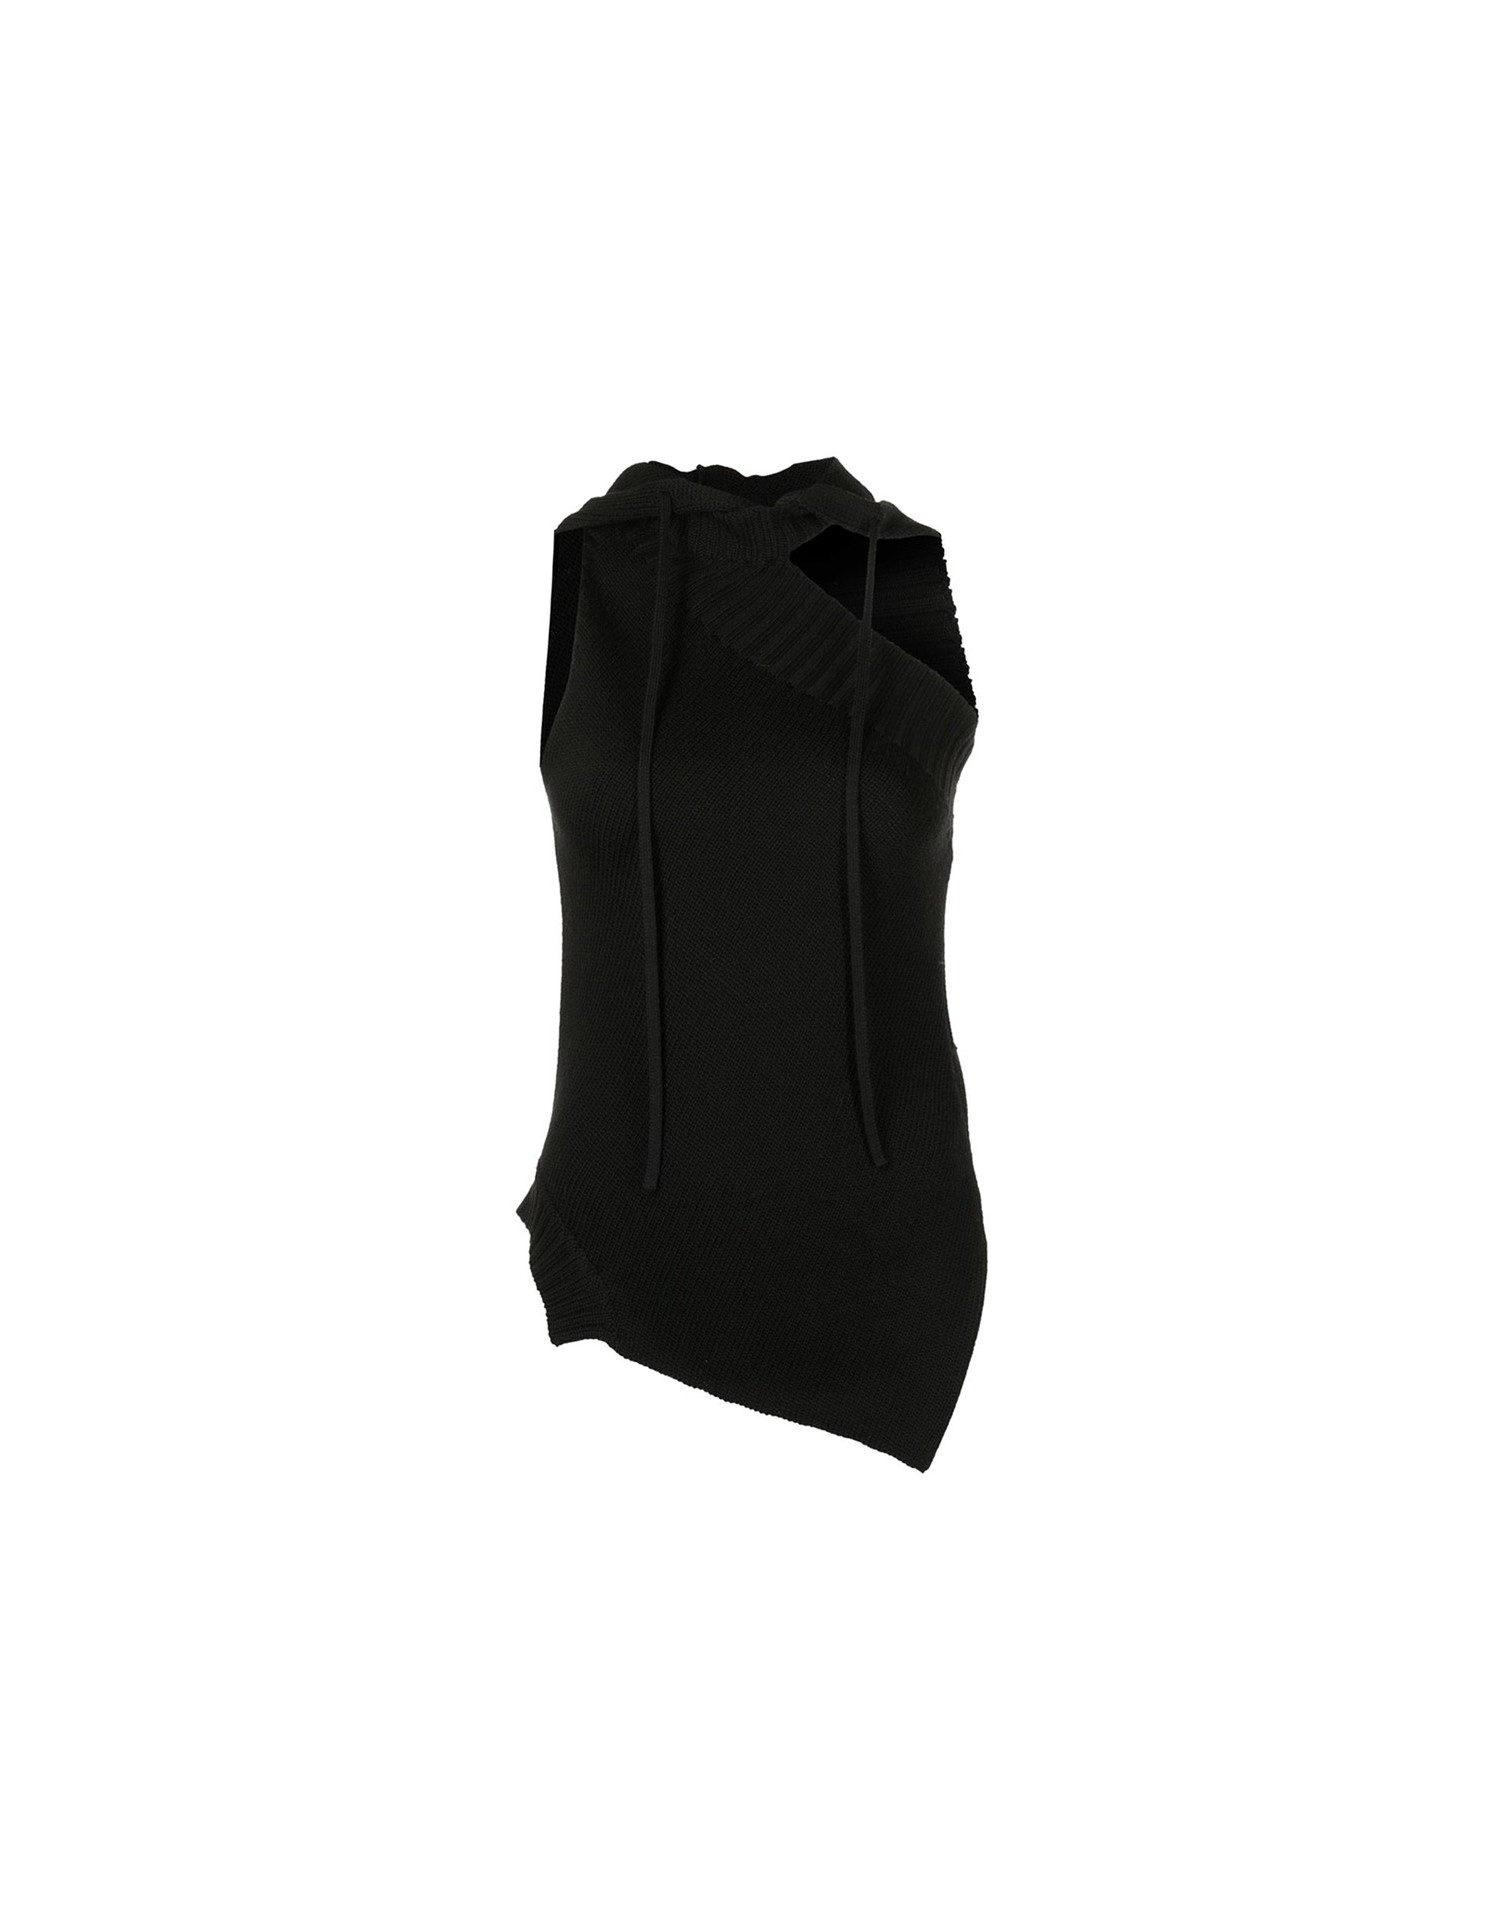 MONSE Sleeveless Hoodie Knit Top in Black Flat Front